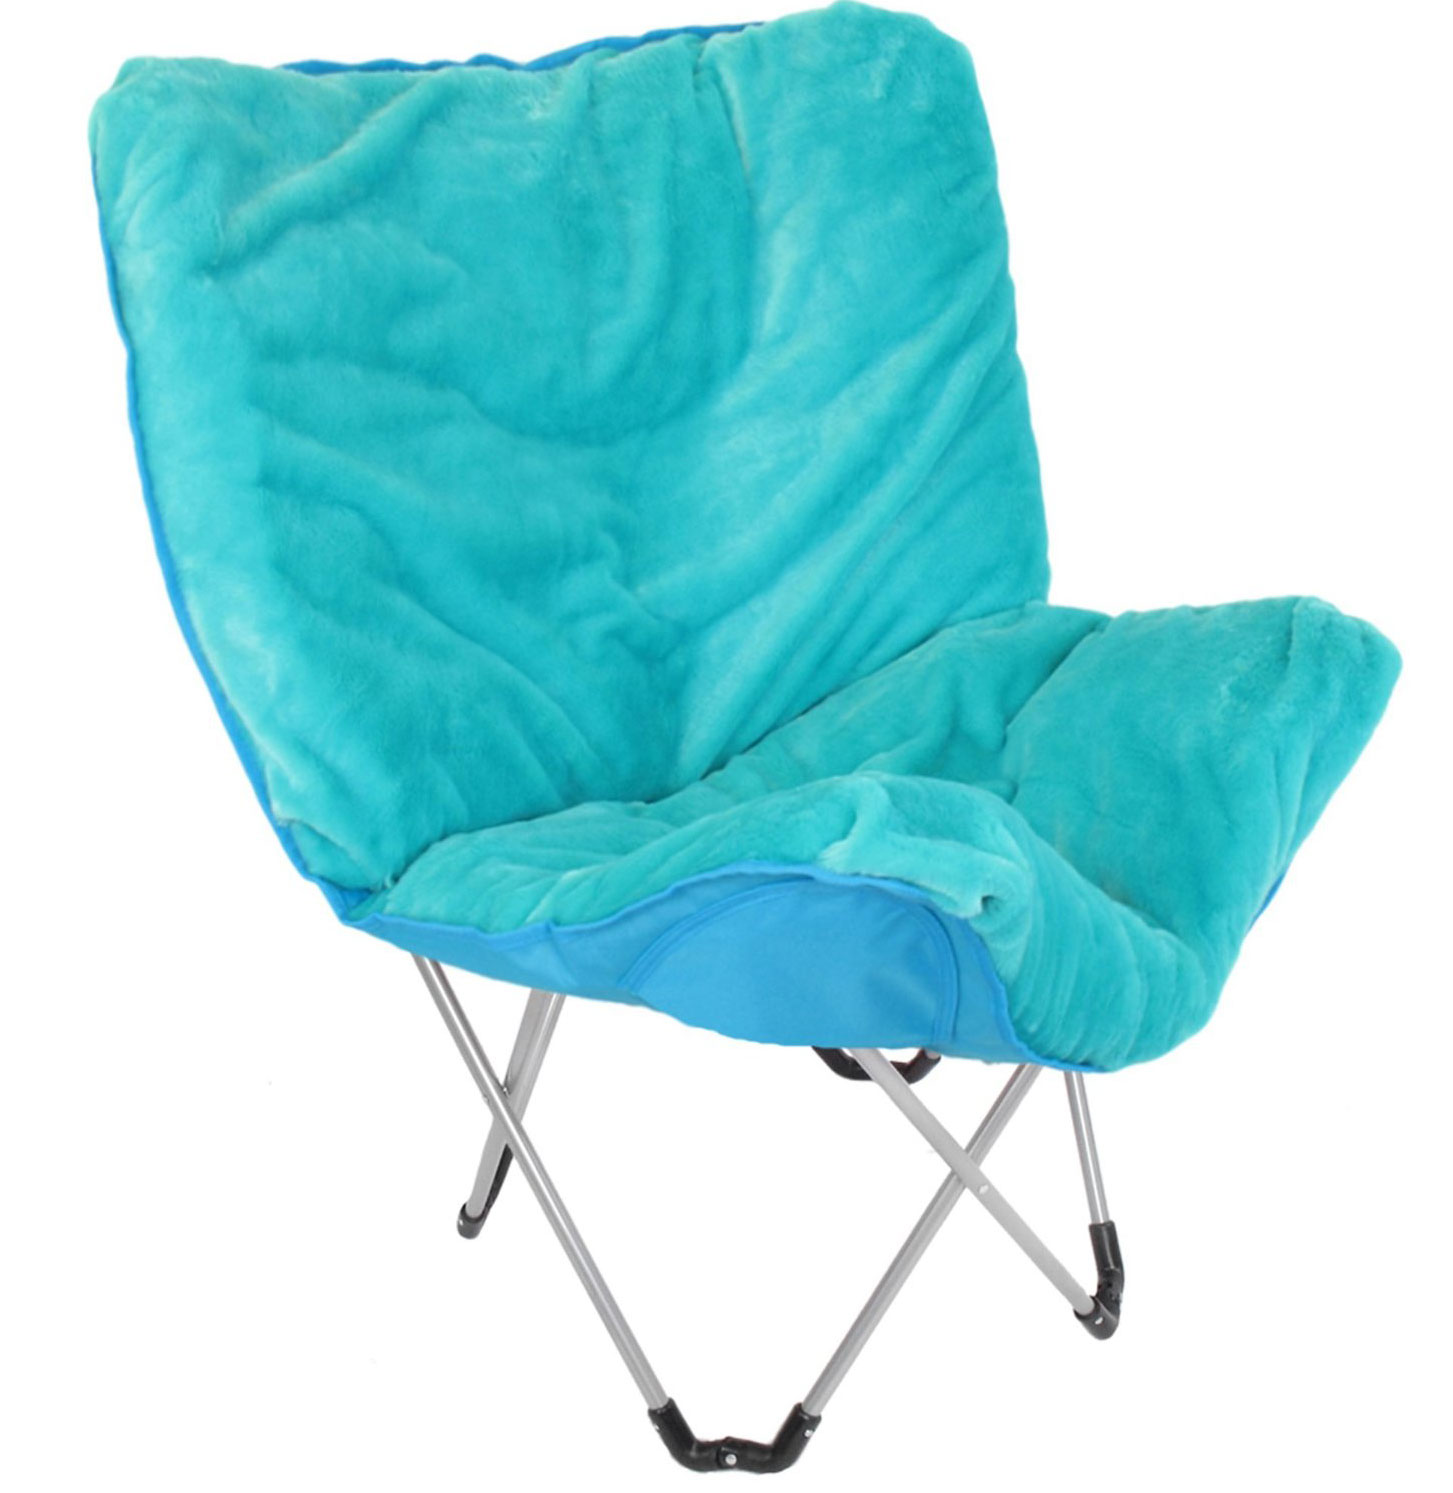 Butterfly Chair Covers Walmart Ergonomic Gaming Fuzzy Folding Frasesdeconquista